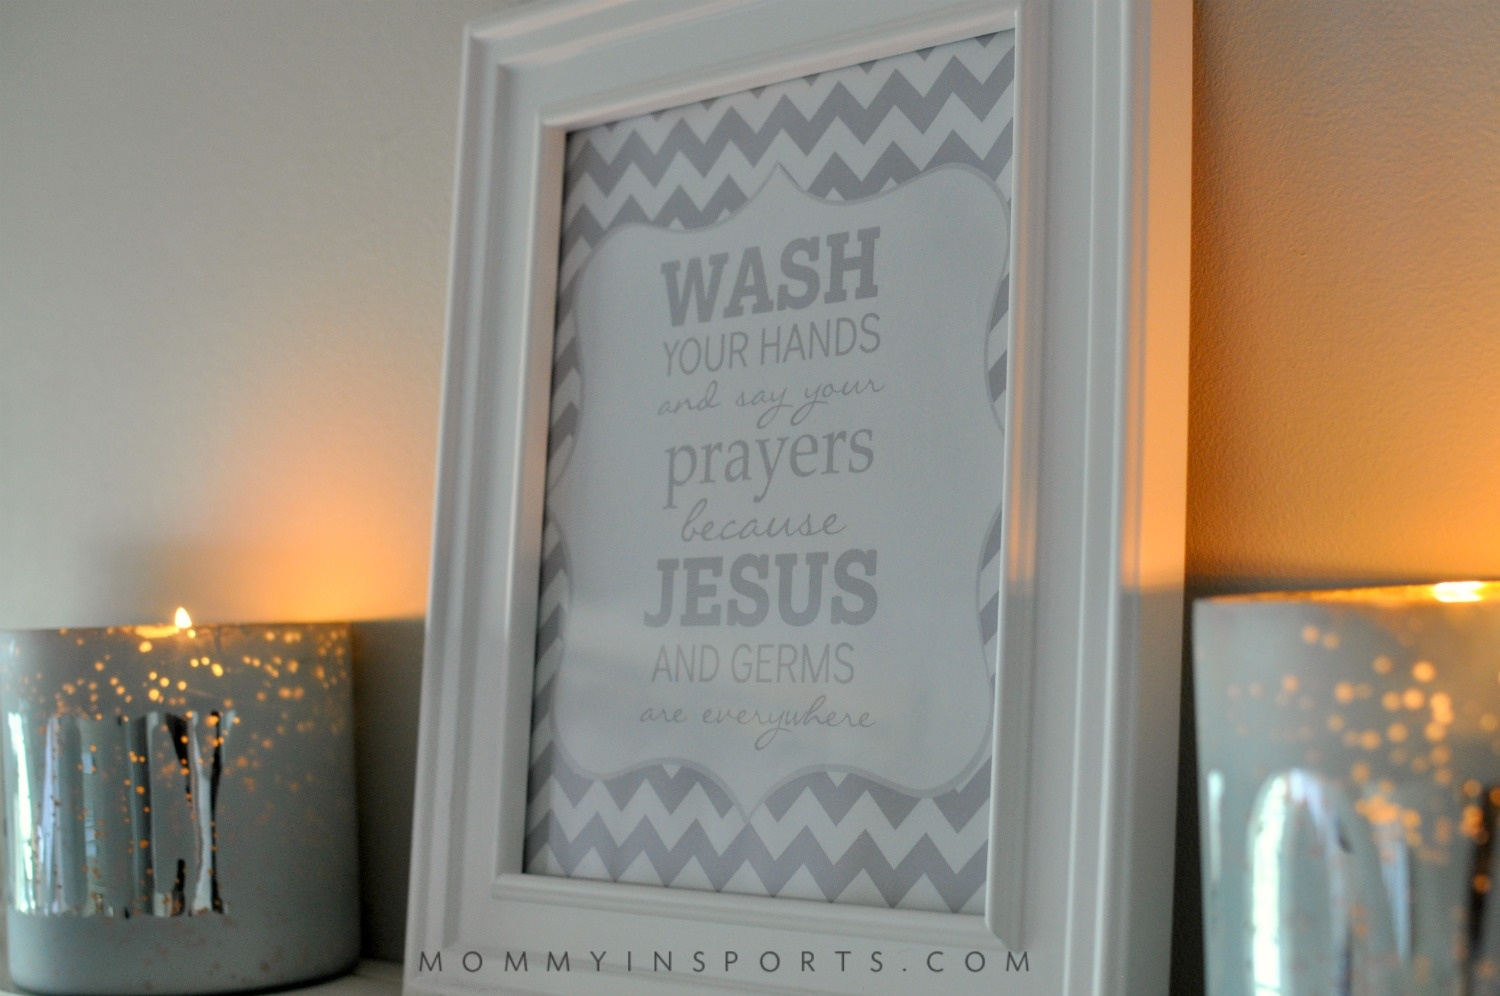 Free Bathroom Printable - Kristen Hewitt - Wash Your Hands And Say Your Prayers Free Printable